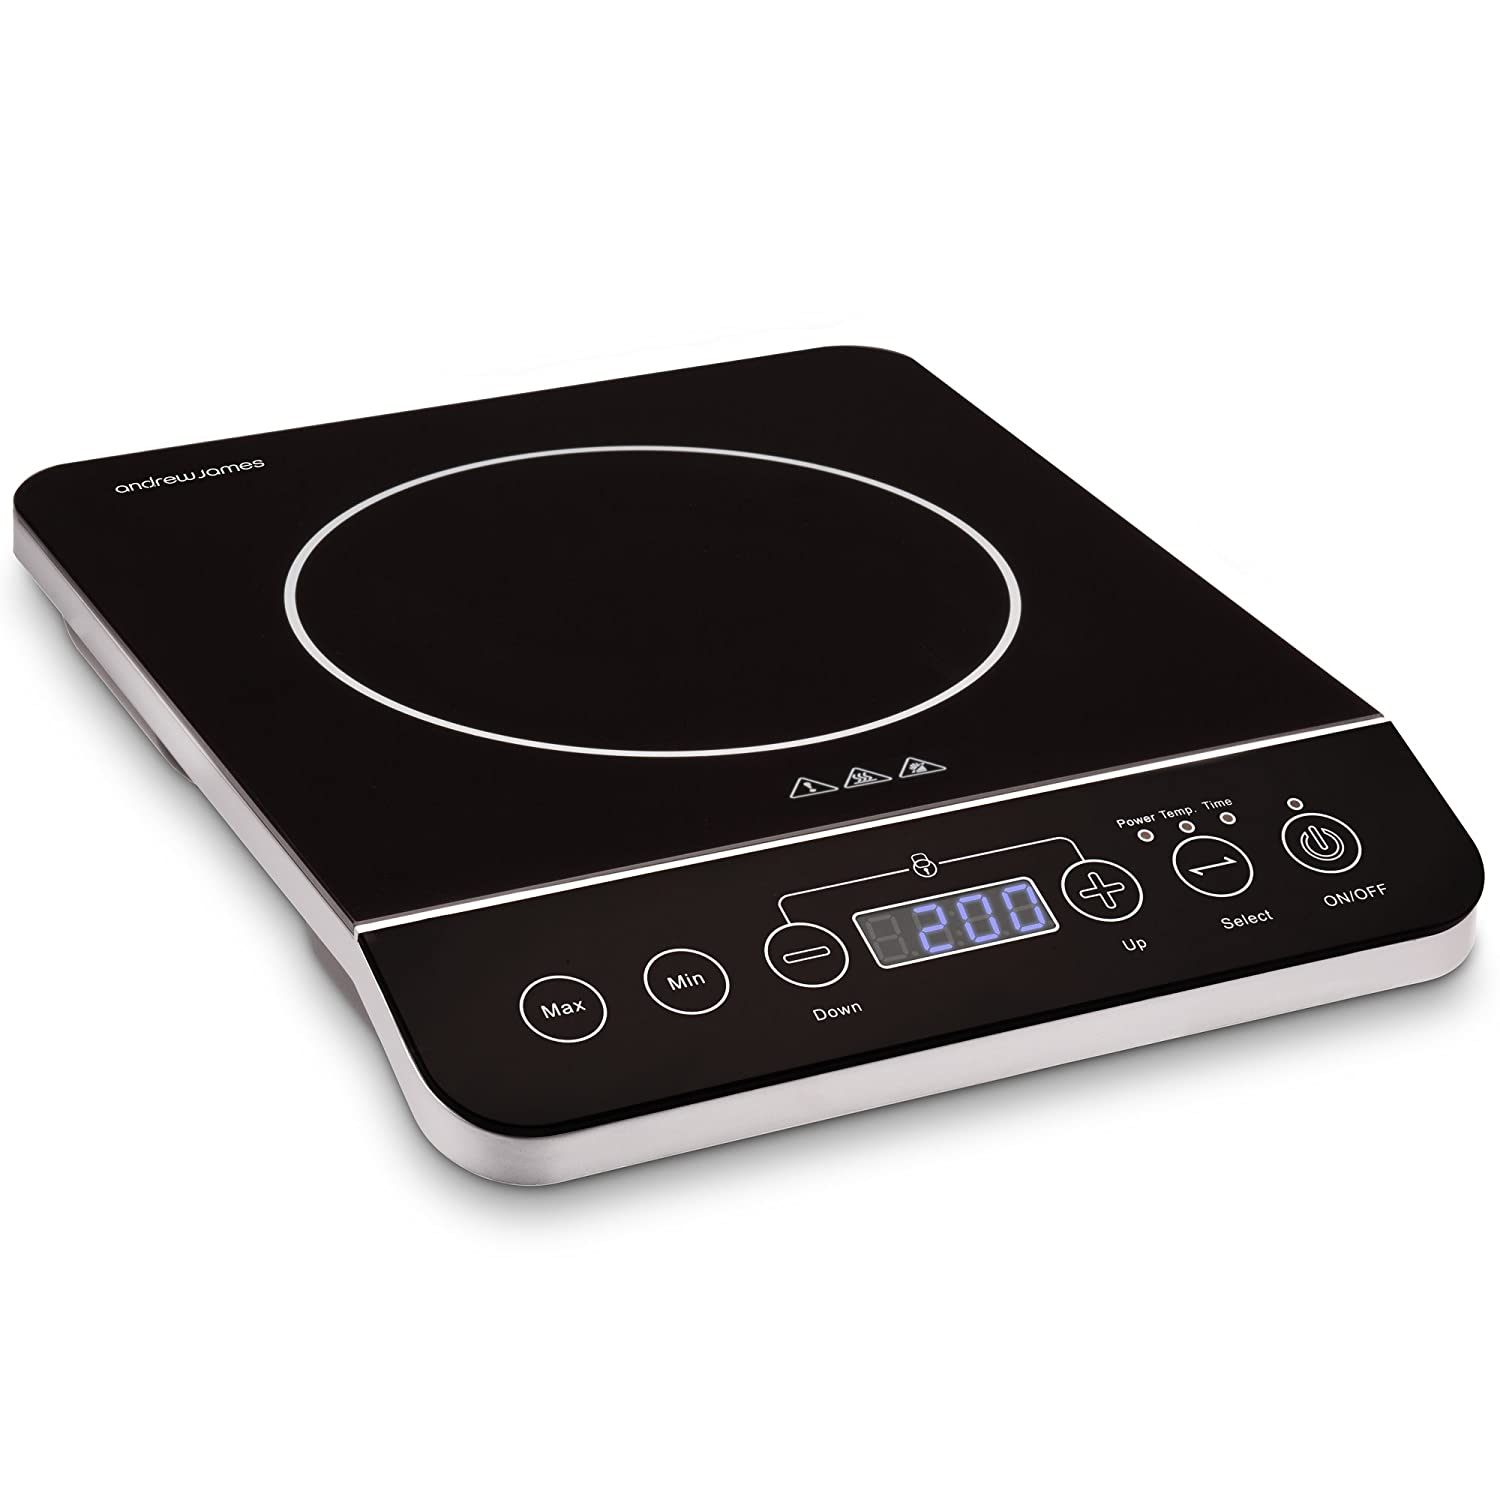 Andrew James Induction Hob | Single Portable 13amp Electric Cooker with Auto Switch-Off & Blue LED Display